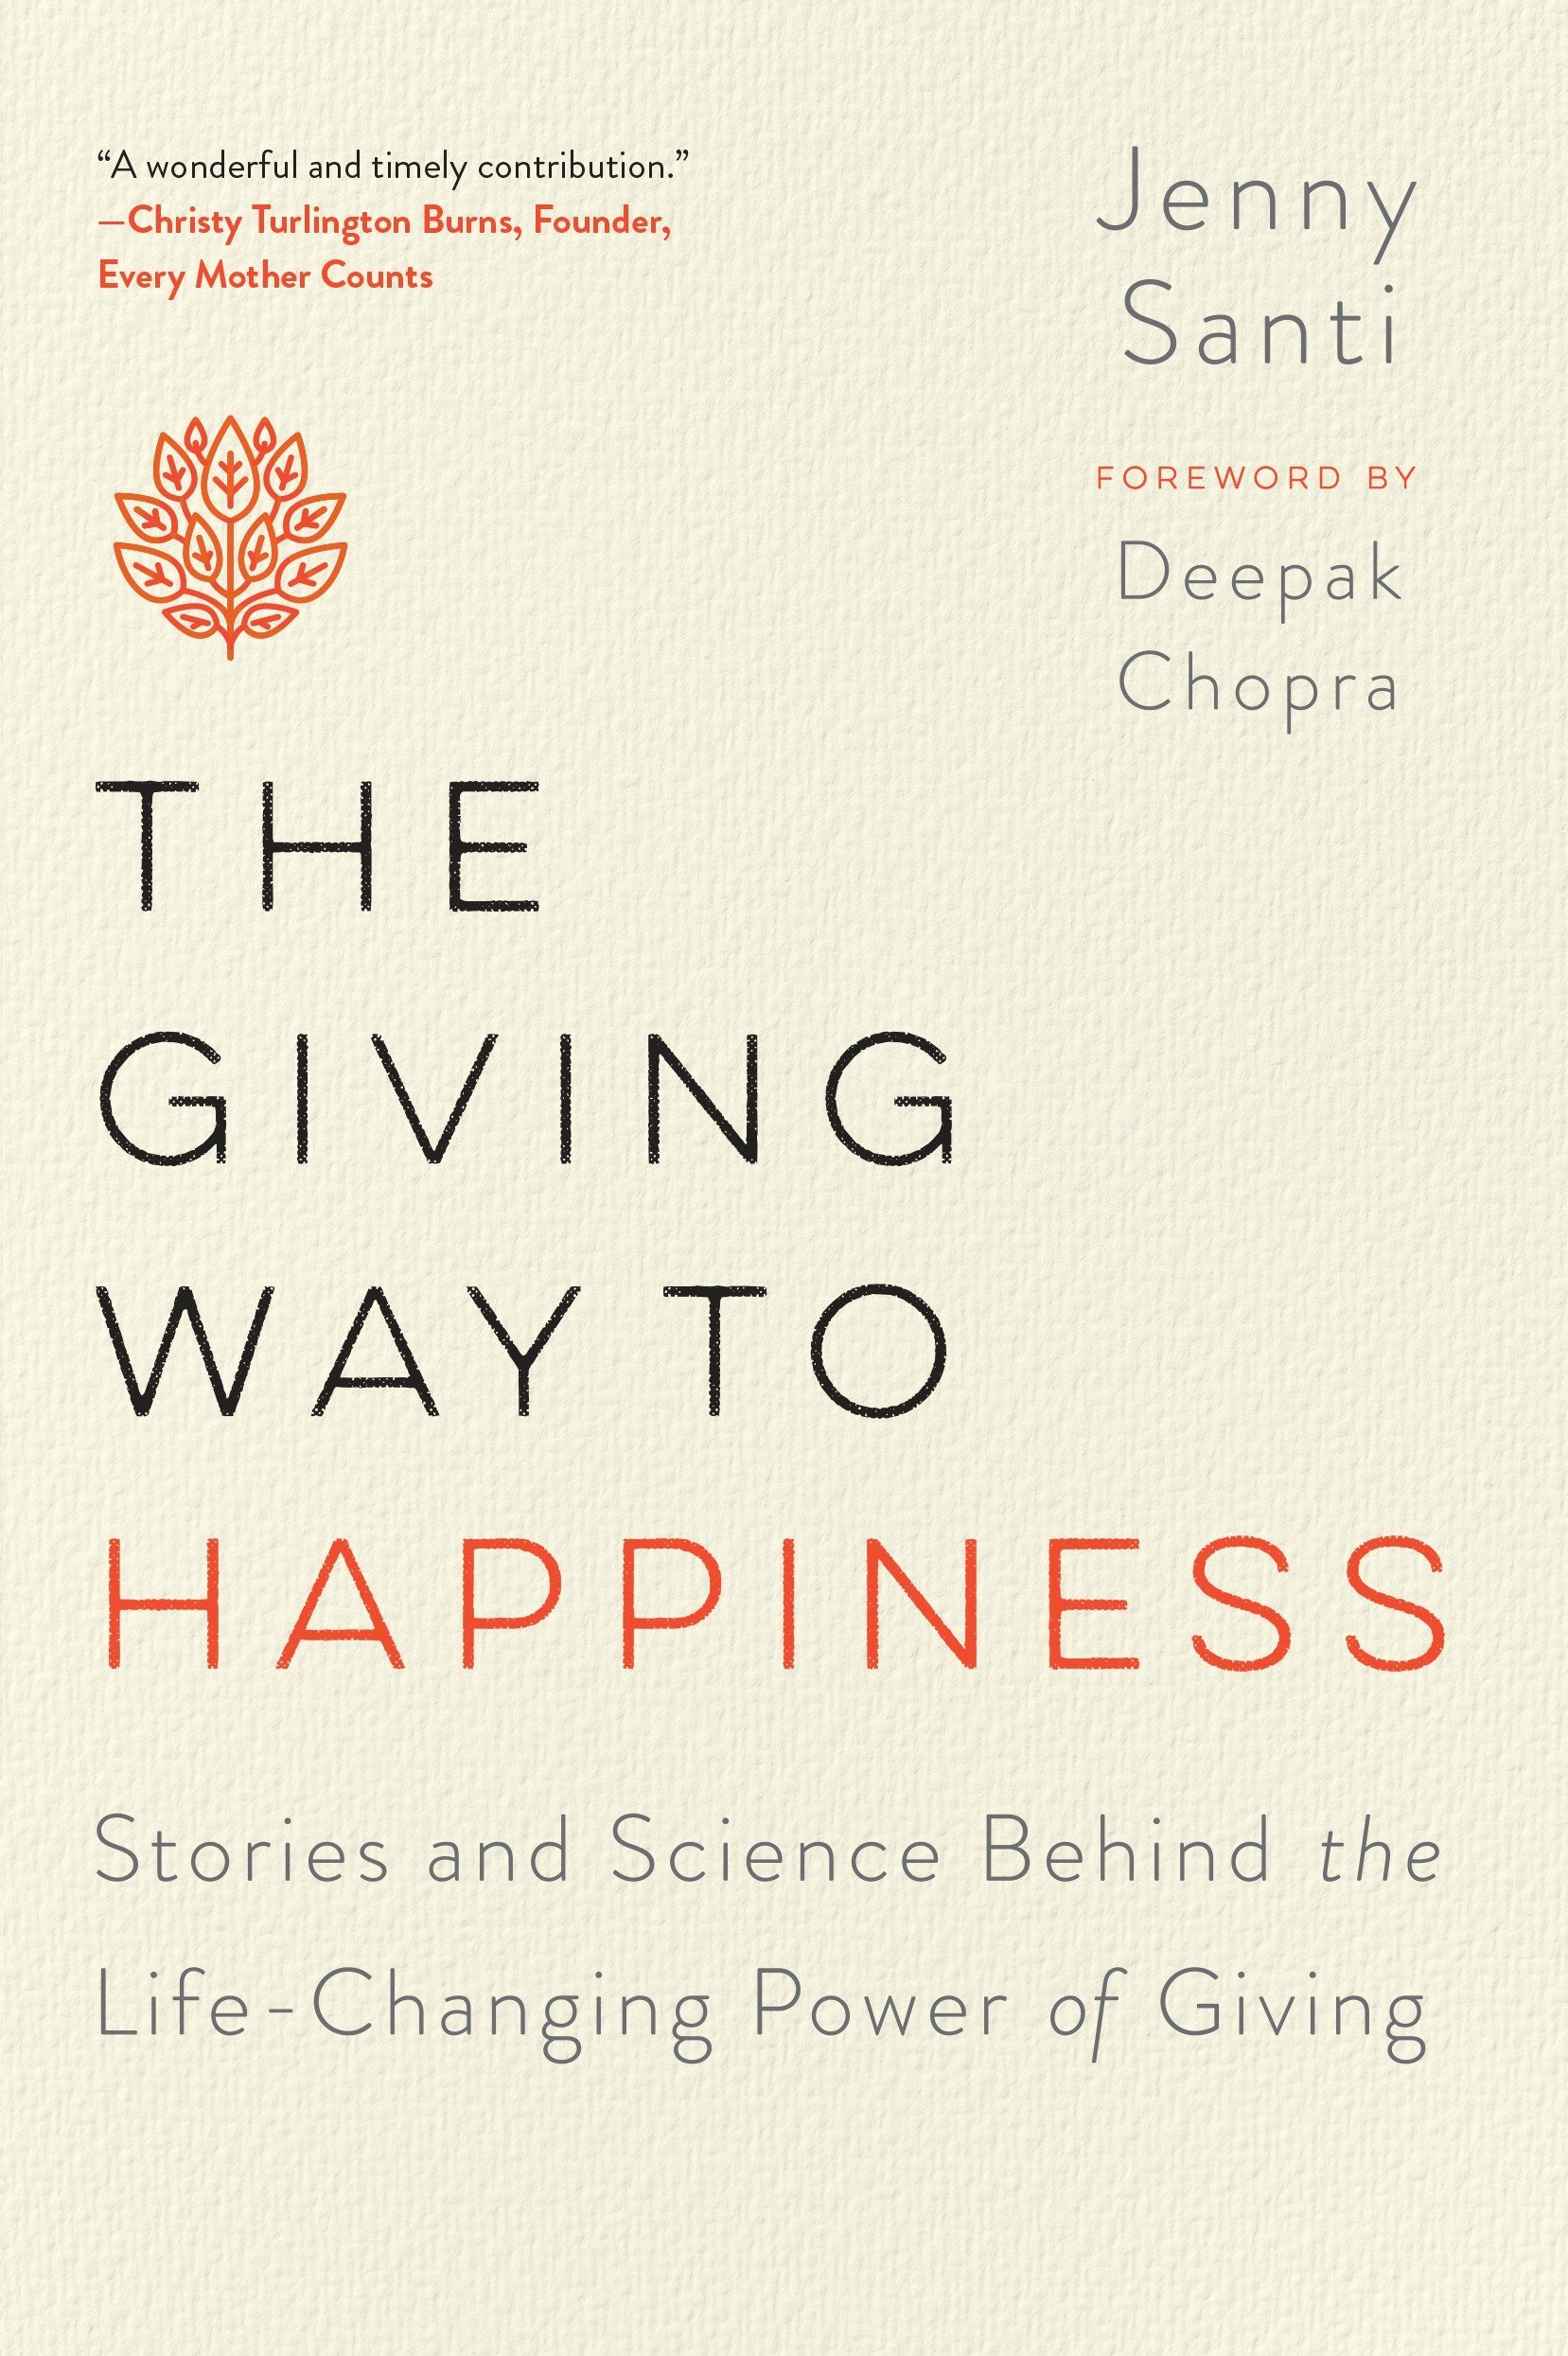 Download The Giving Way to Happiness: Stories and Science Behind the Life-Changing Power of Giving PDF ePub fb2 ebook